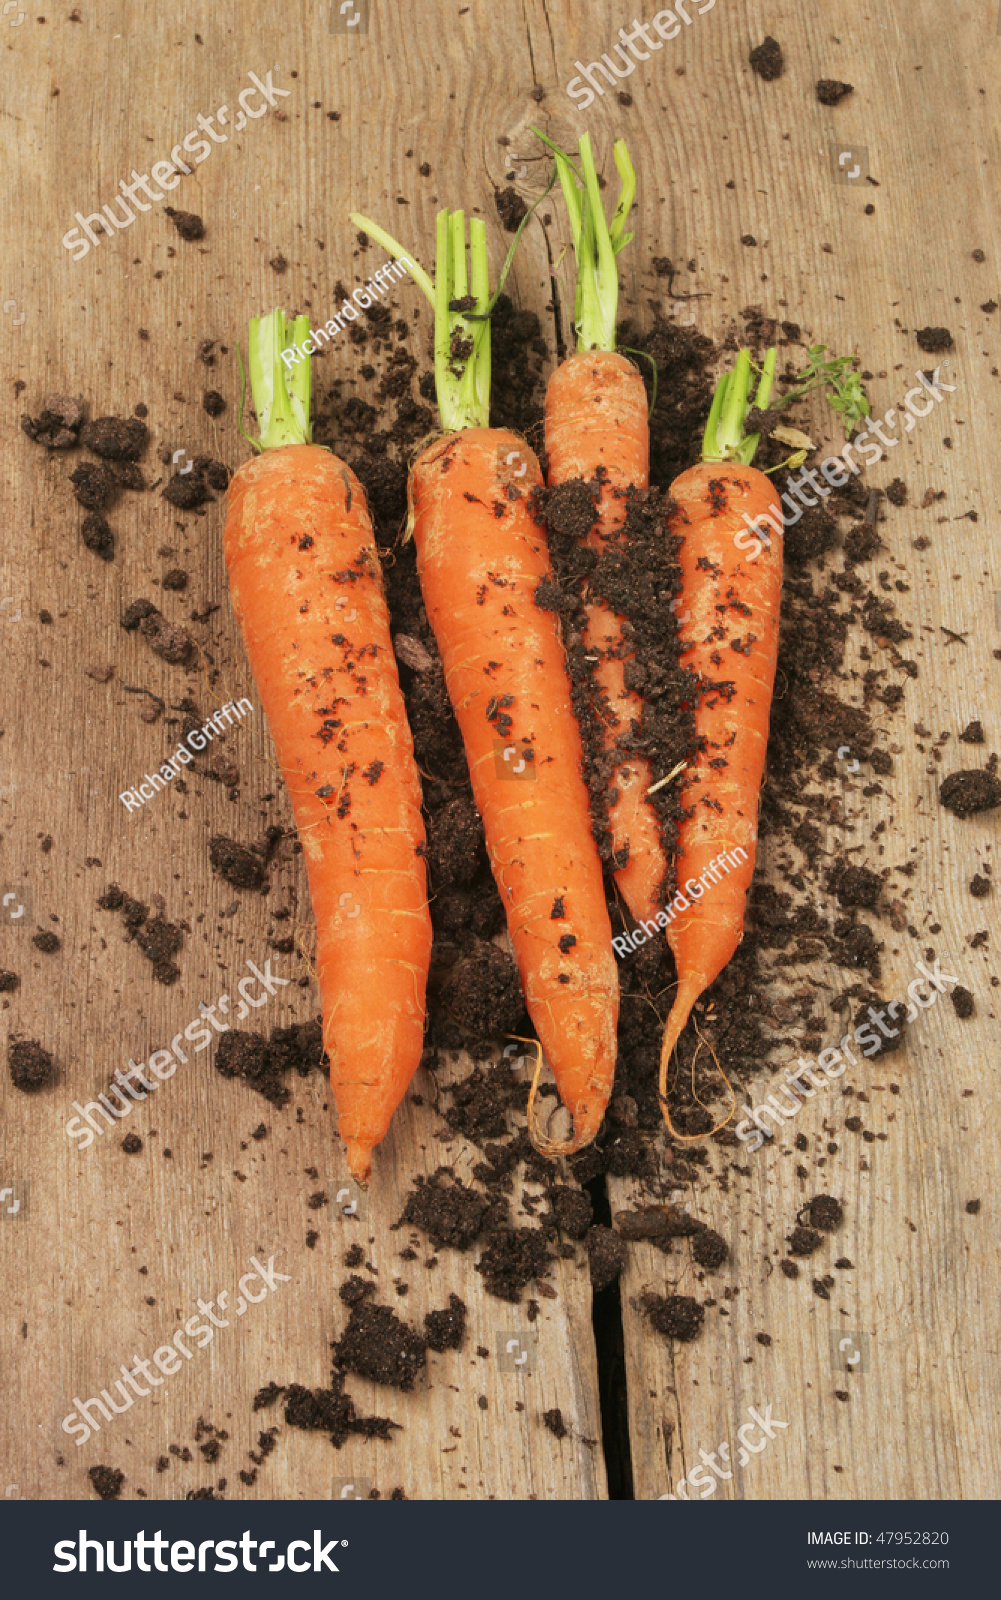 Fresh Carrots And Soil On Old Weathered Wood Stock Photo ...